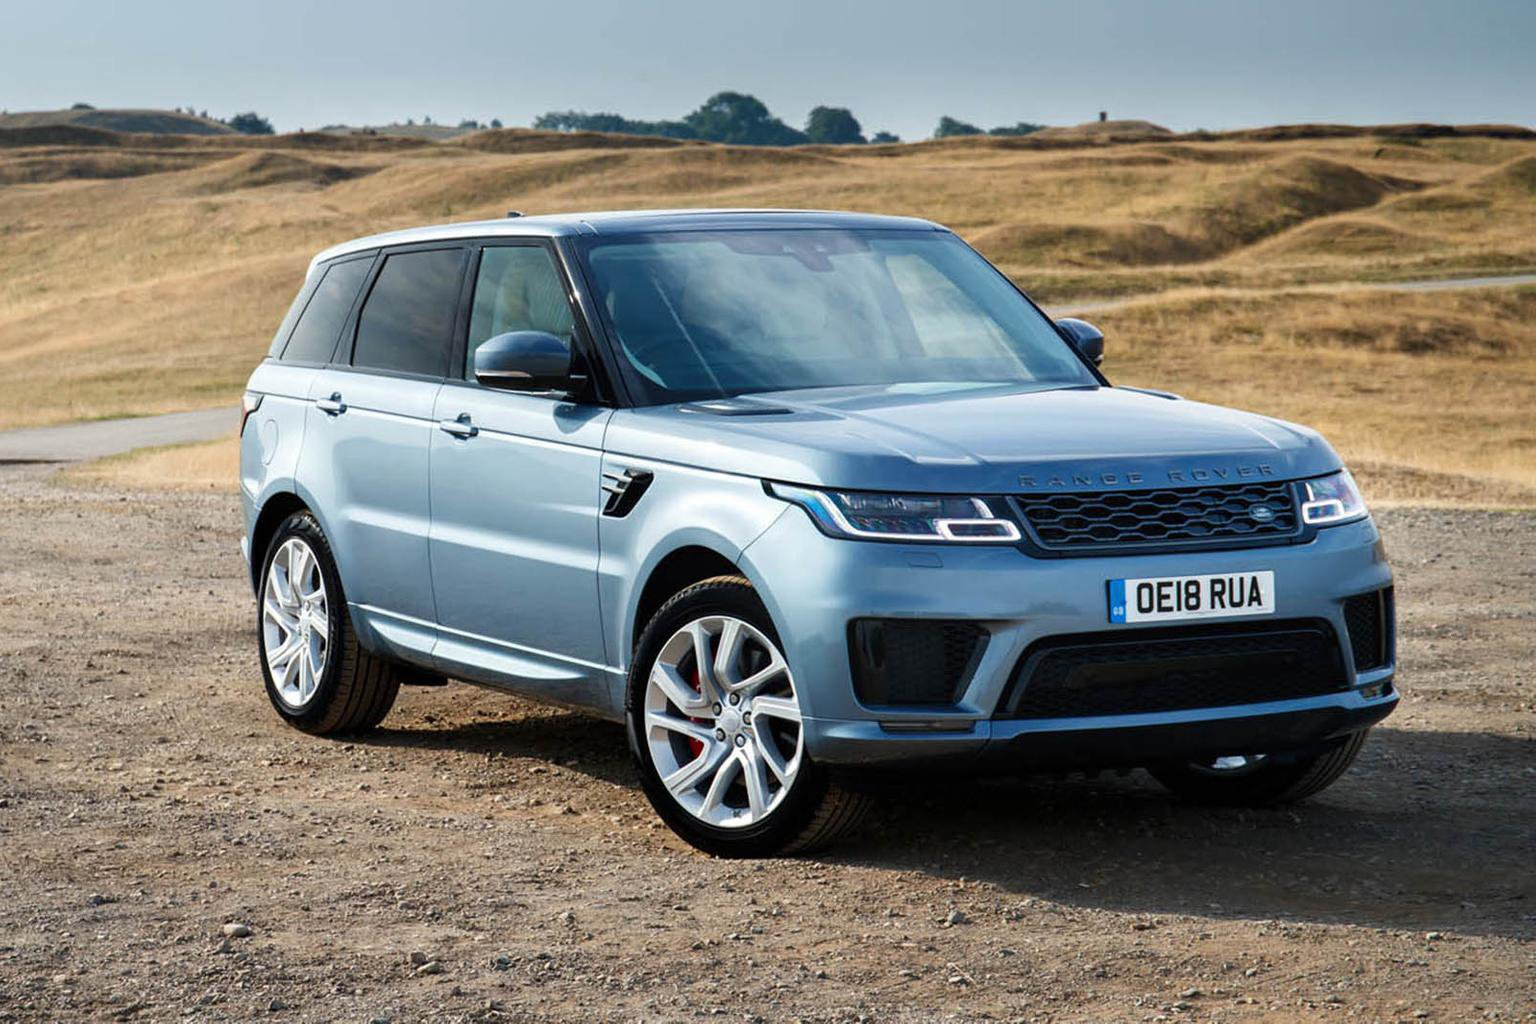 2018 Range Rover Sport Phev P400e Review Price Specs And Release Date